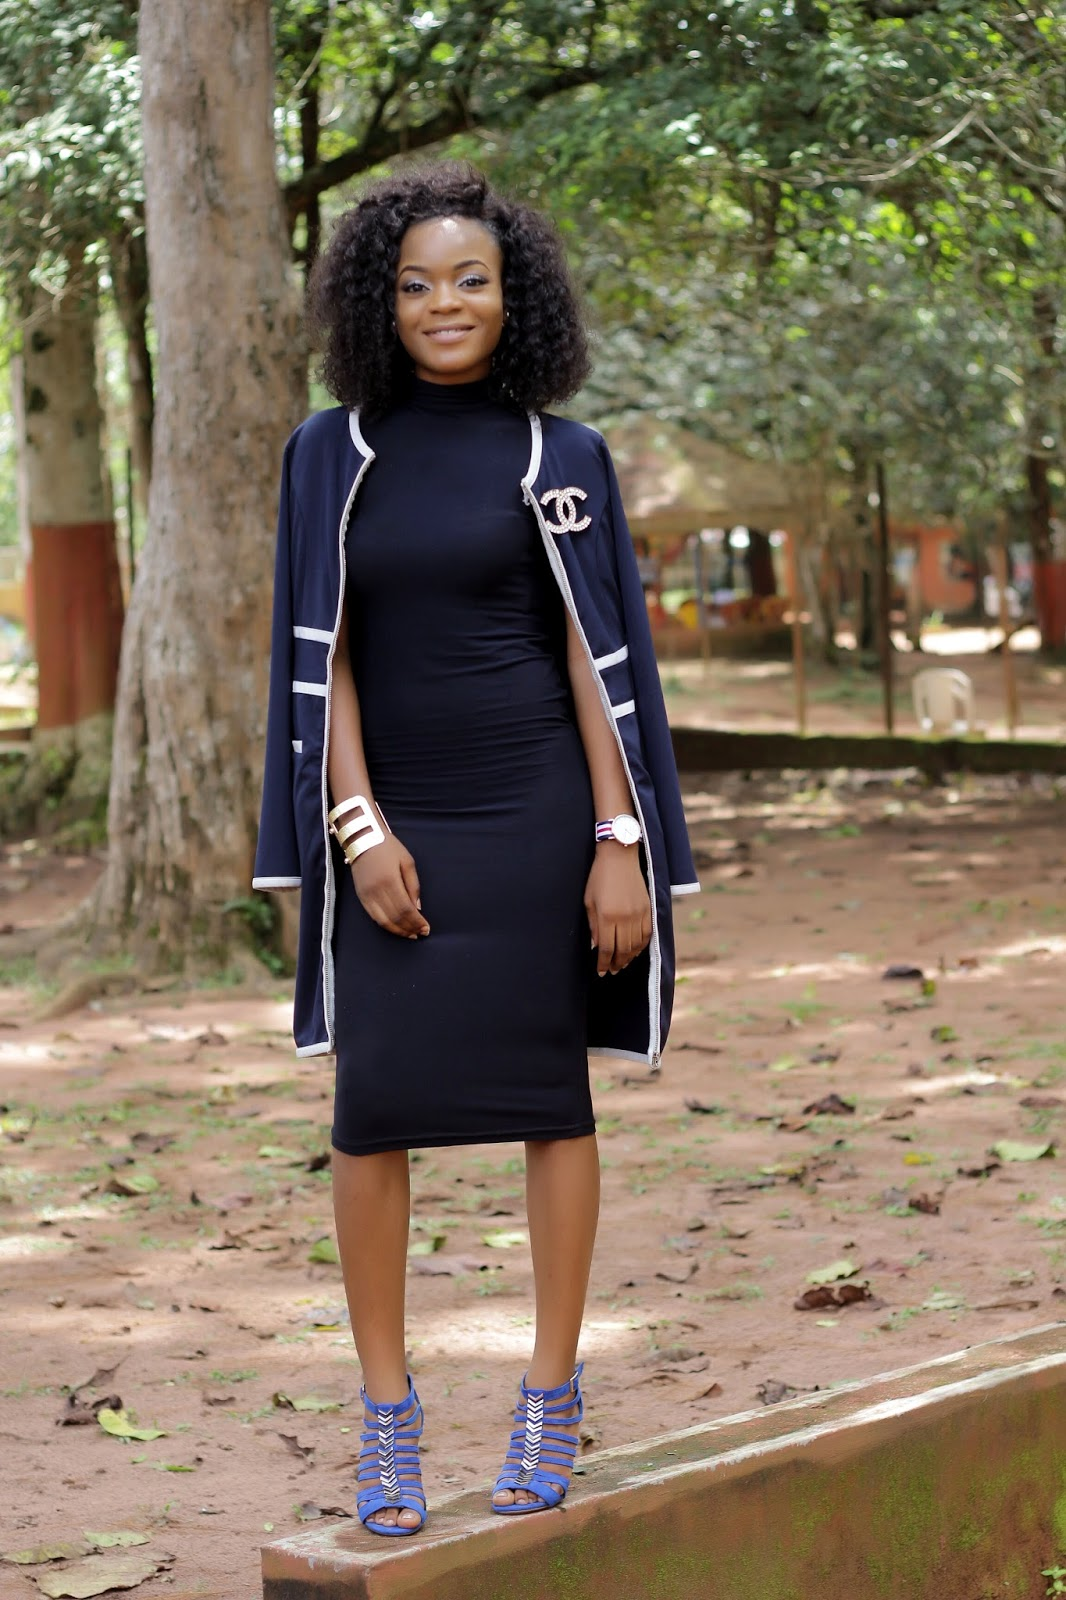 NAVY BLUE ALTER NECK DRESS AND NAVY BLUE JACKET